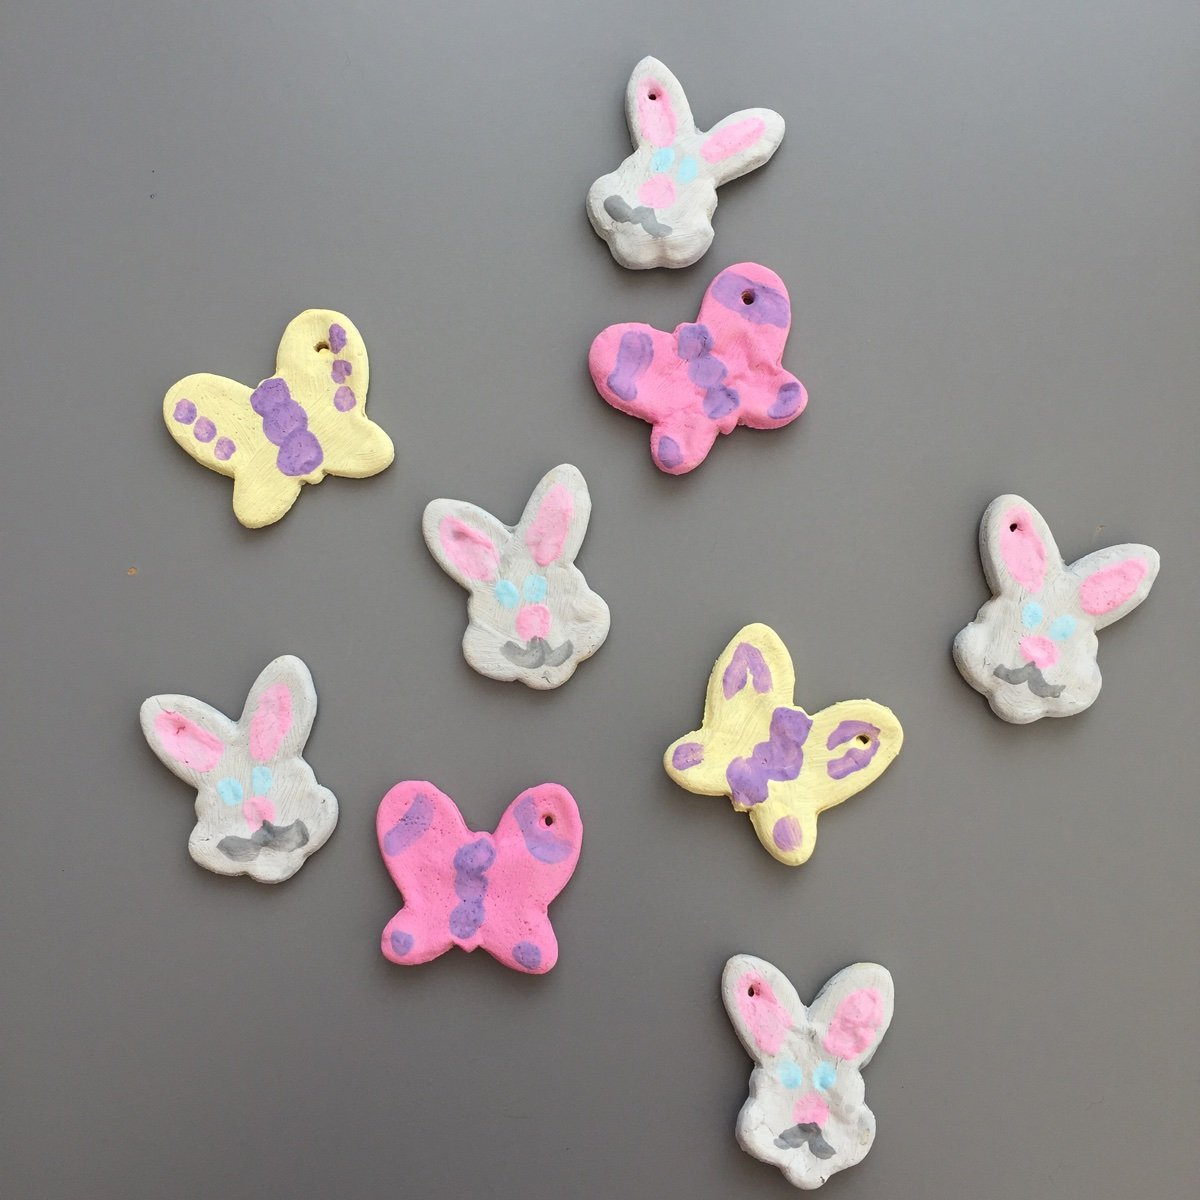 easter bunny craft for kids, salt dough ornaments, salt dough recipe, easter decorations for kids, easter crafts for kids, spring crafts for kids